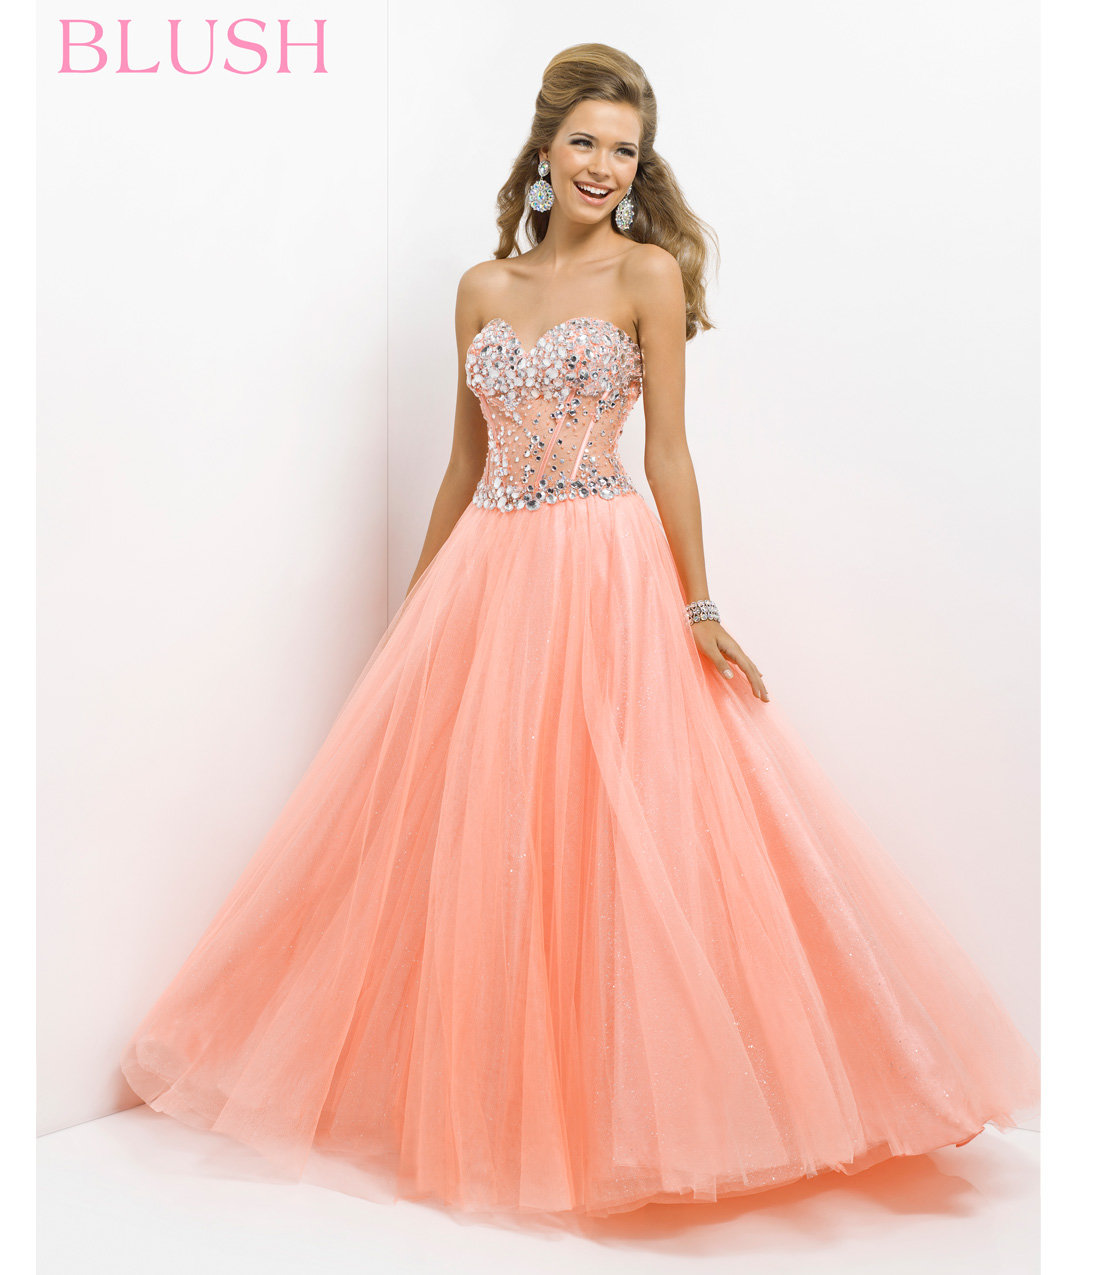 Pink By Blush 2014 Prom Dresses